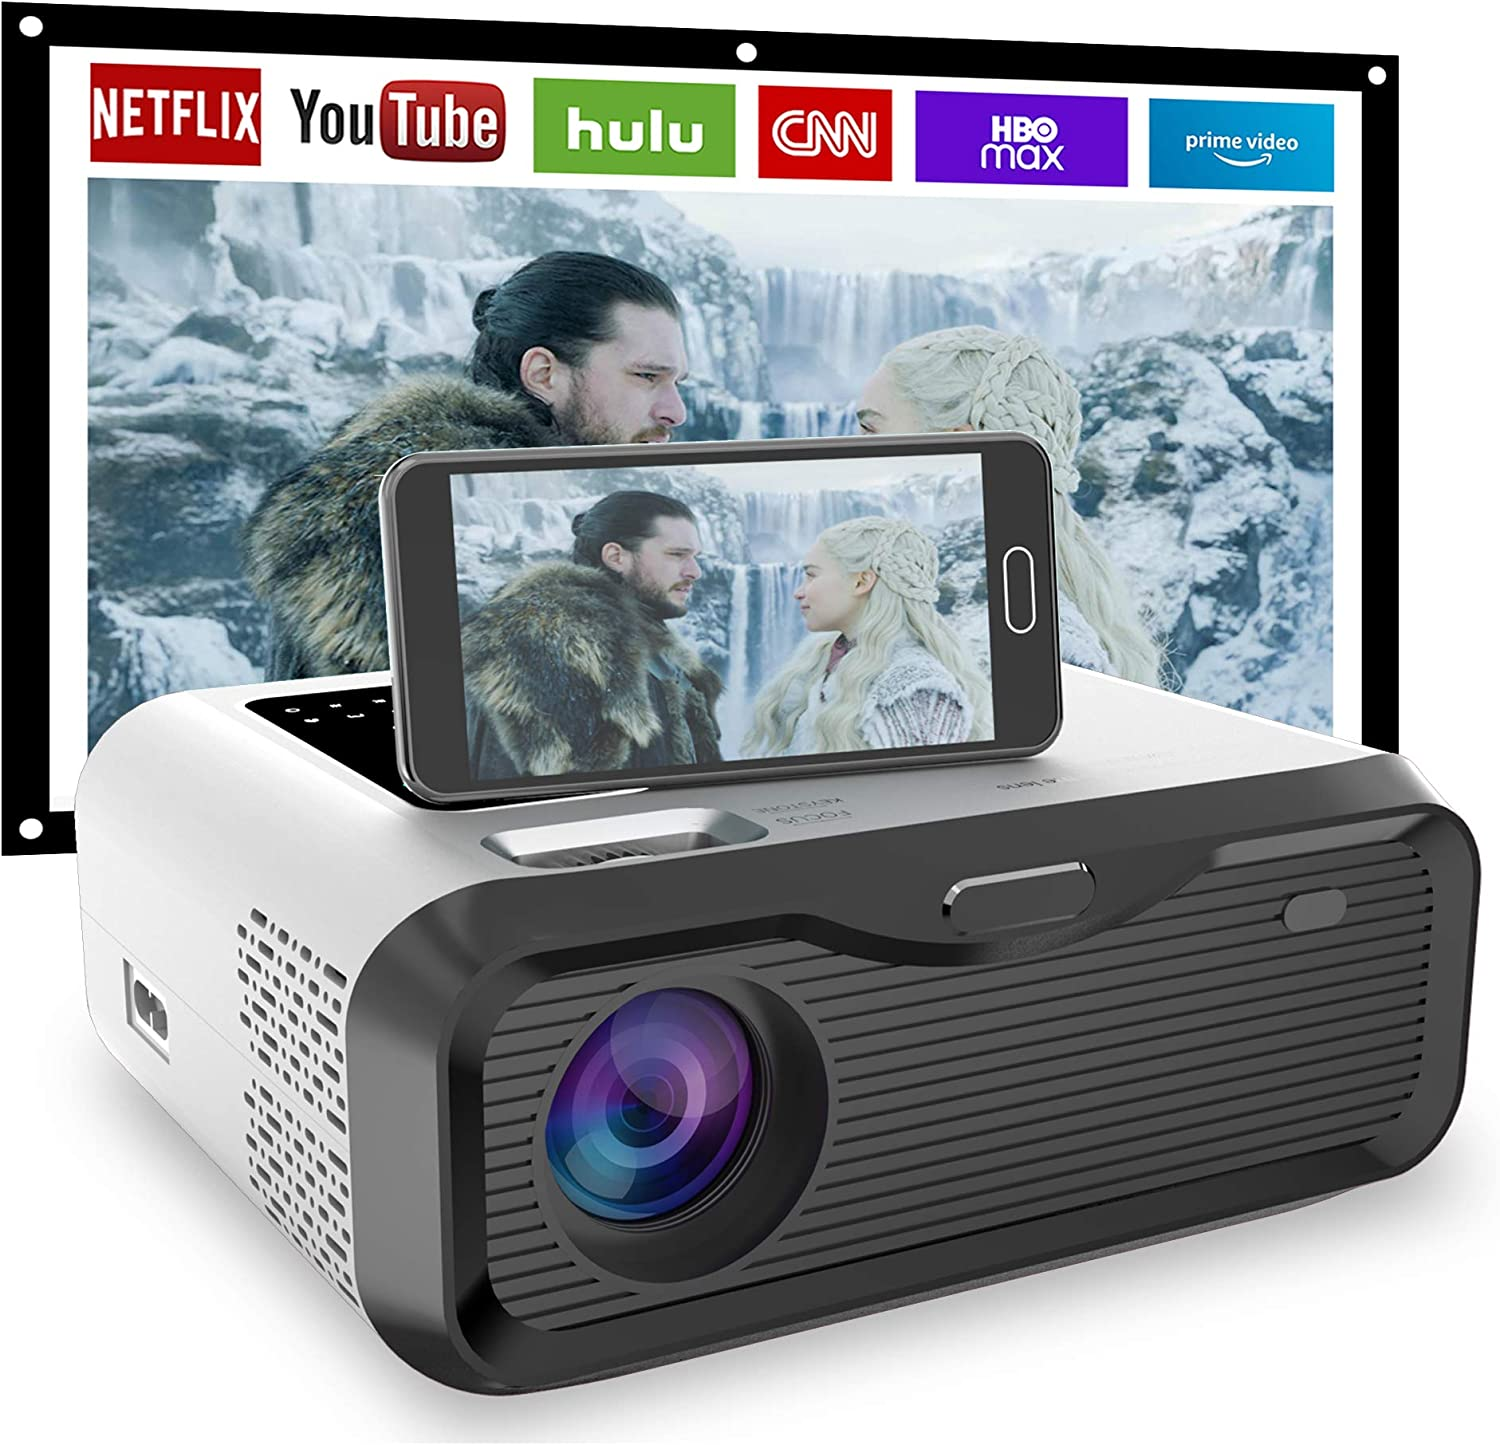 1080P Outdoor Projector with 100/″ Screen MVV WiFi Projector 5500 Lumen Mini Portable Projector Compatible with TV Stick Smartphone Tablet HDMI USB AV for Home Entertainment